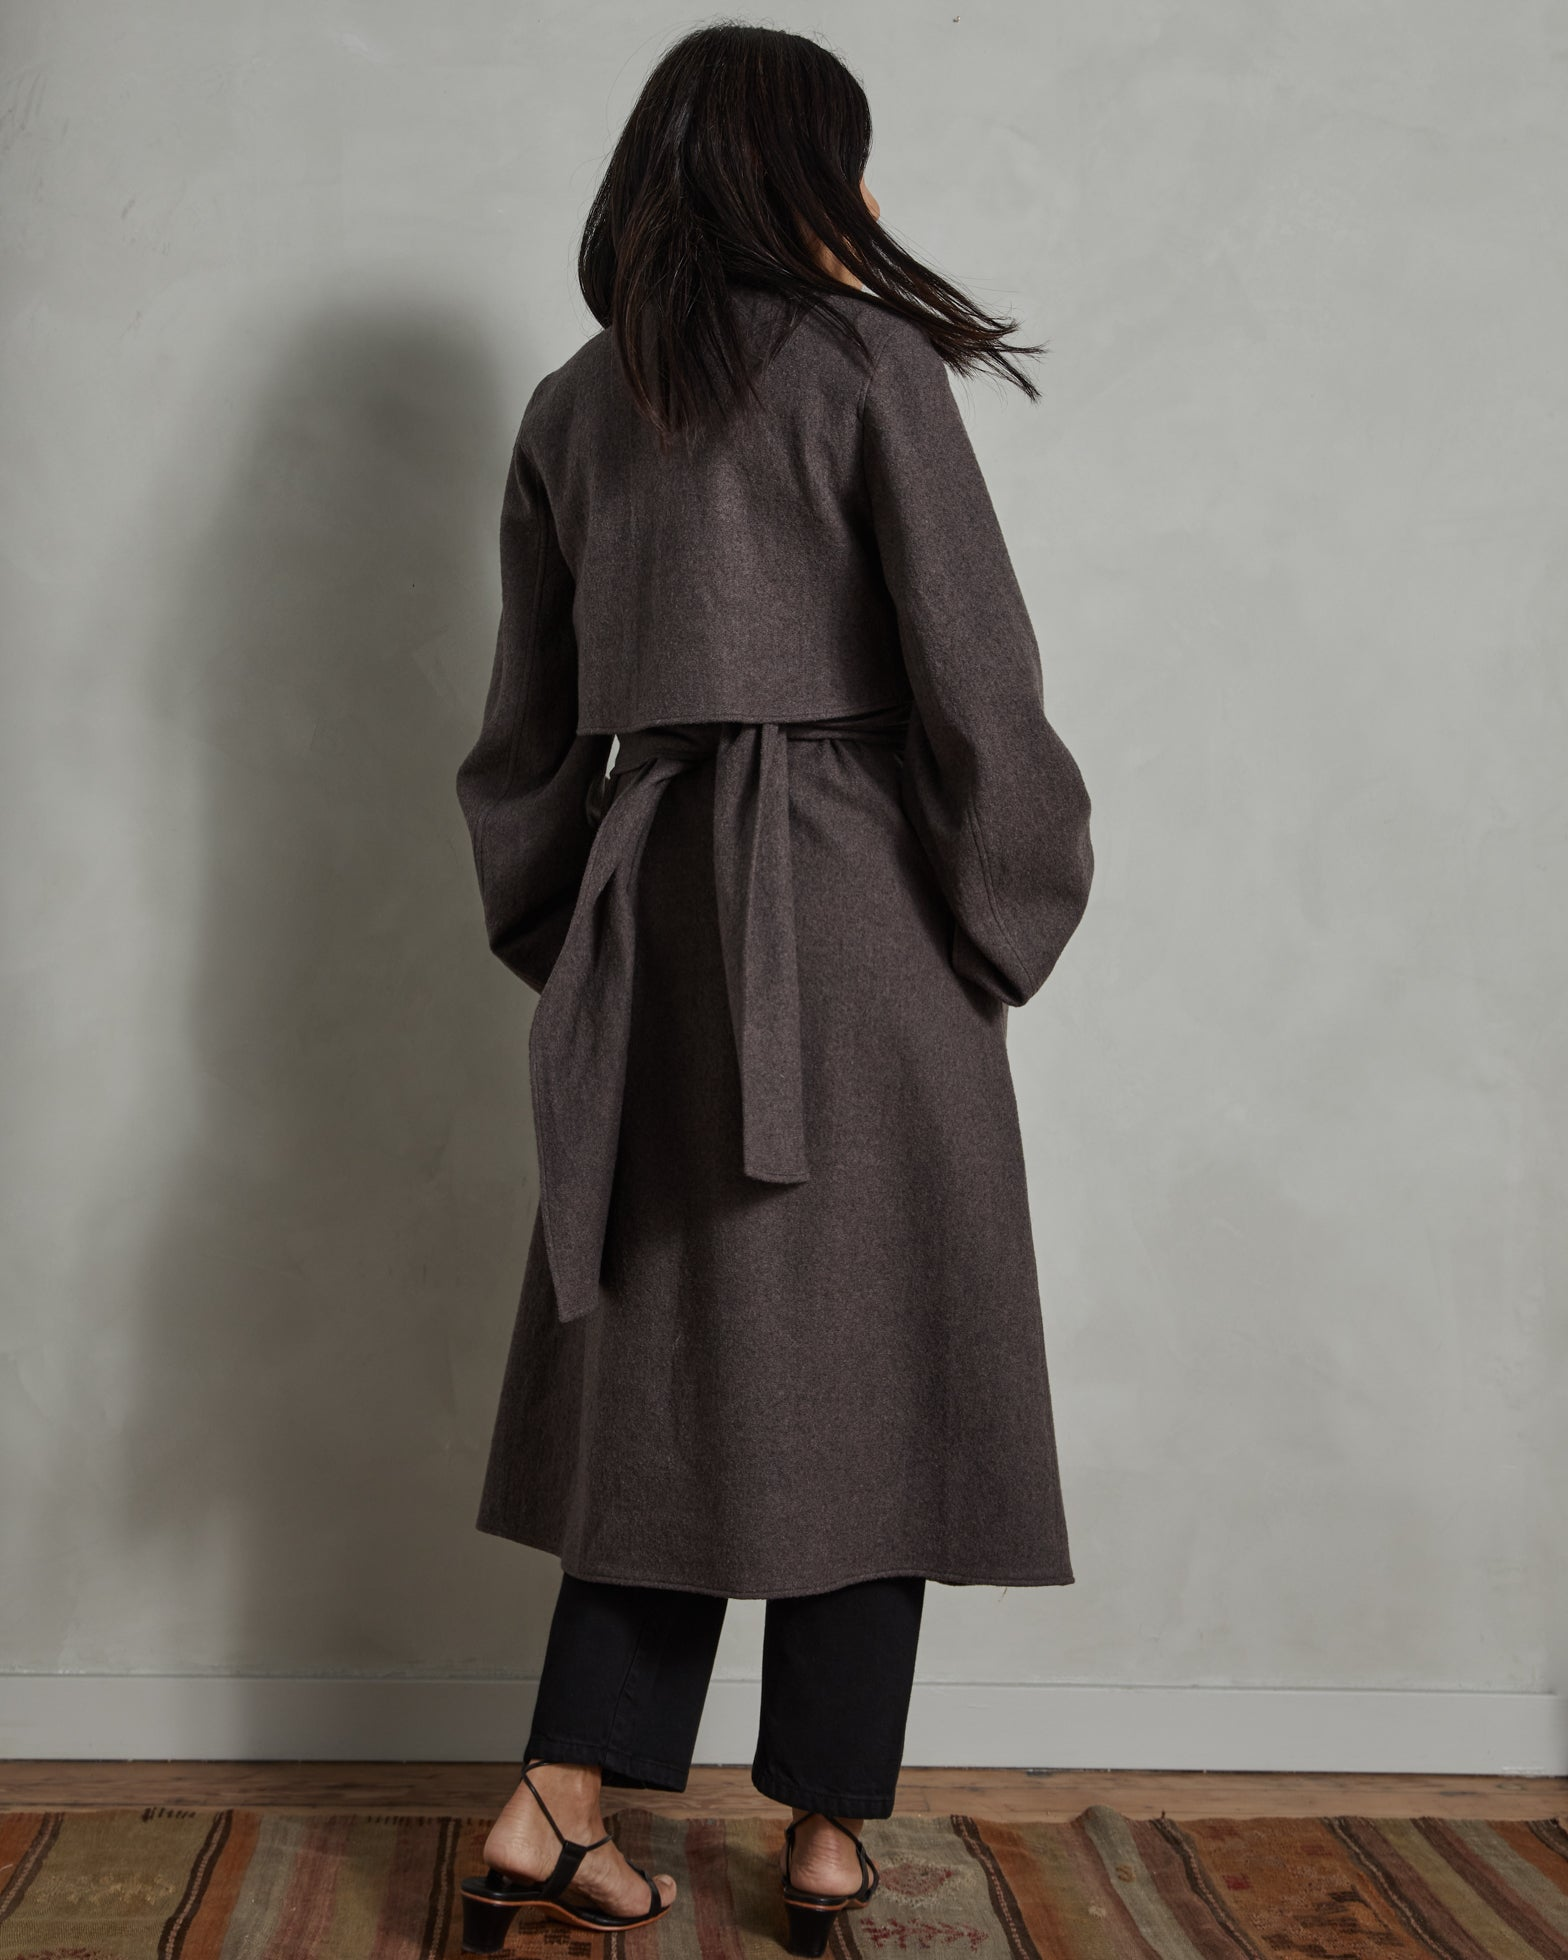 Knotted Coat in Deep Taupe